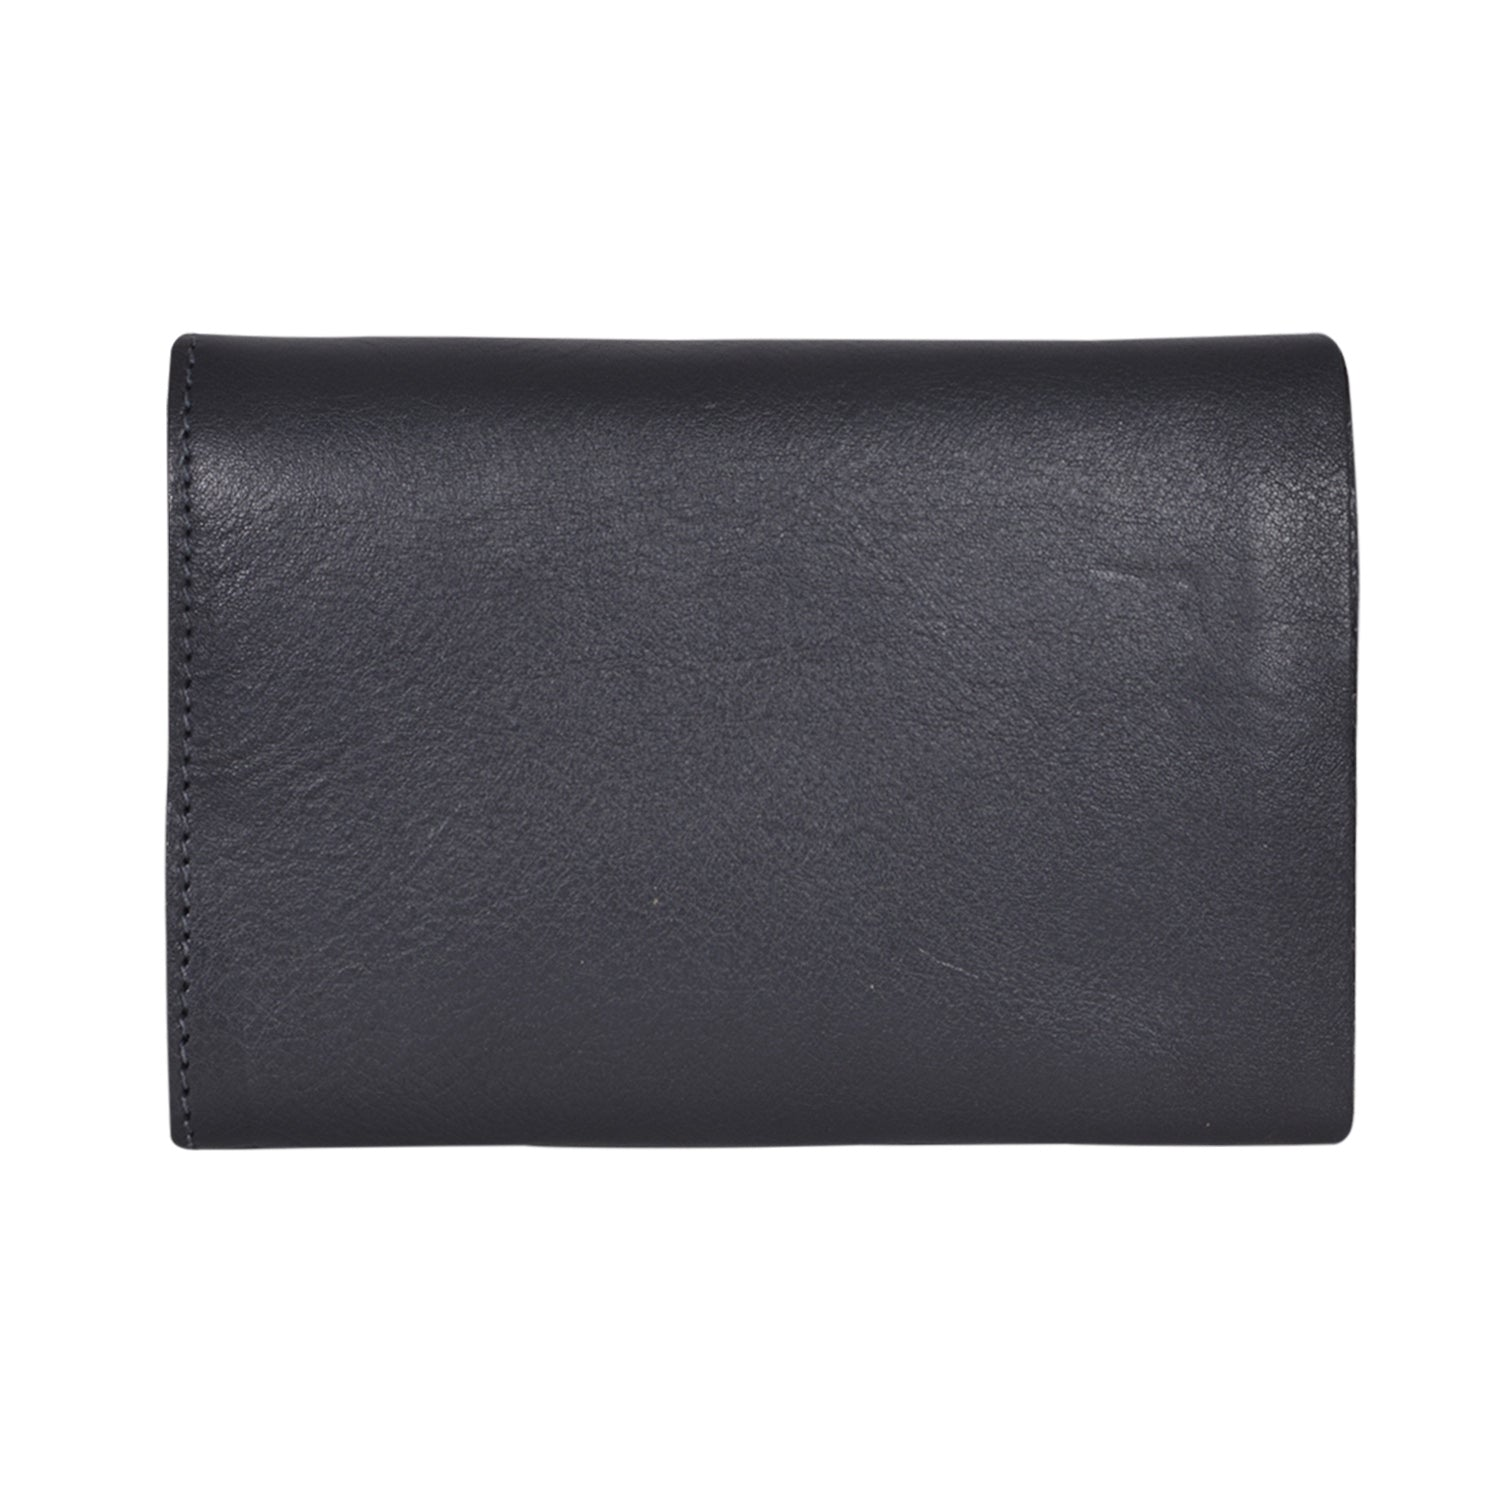 IL BISONTE UNISEX COMPACT FOLDING WALLET IN GREY  COWHIDE LEATHER